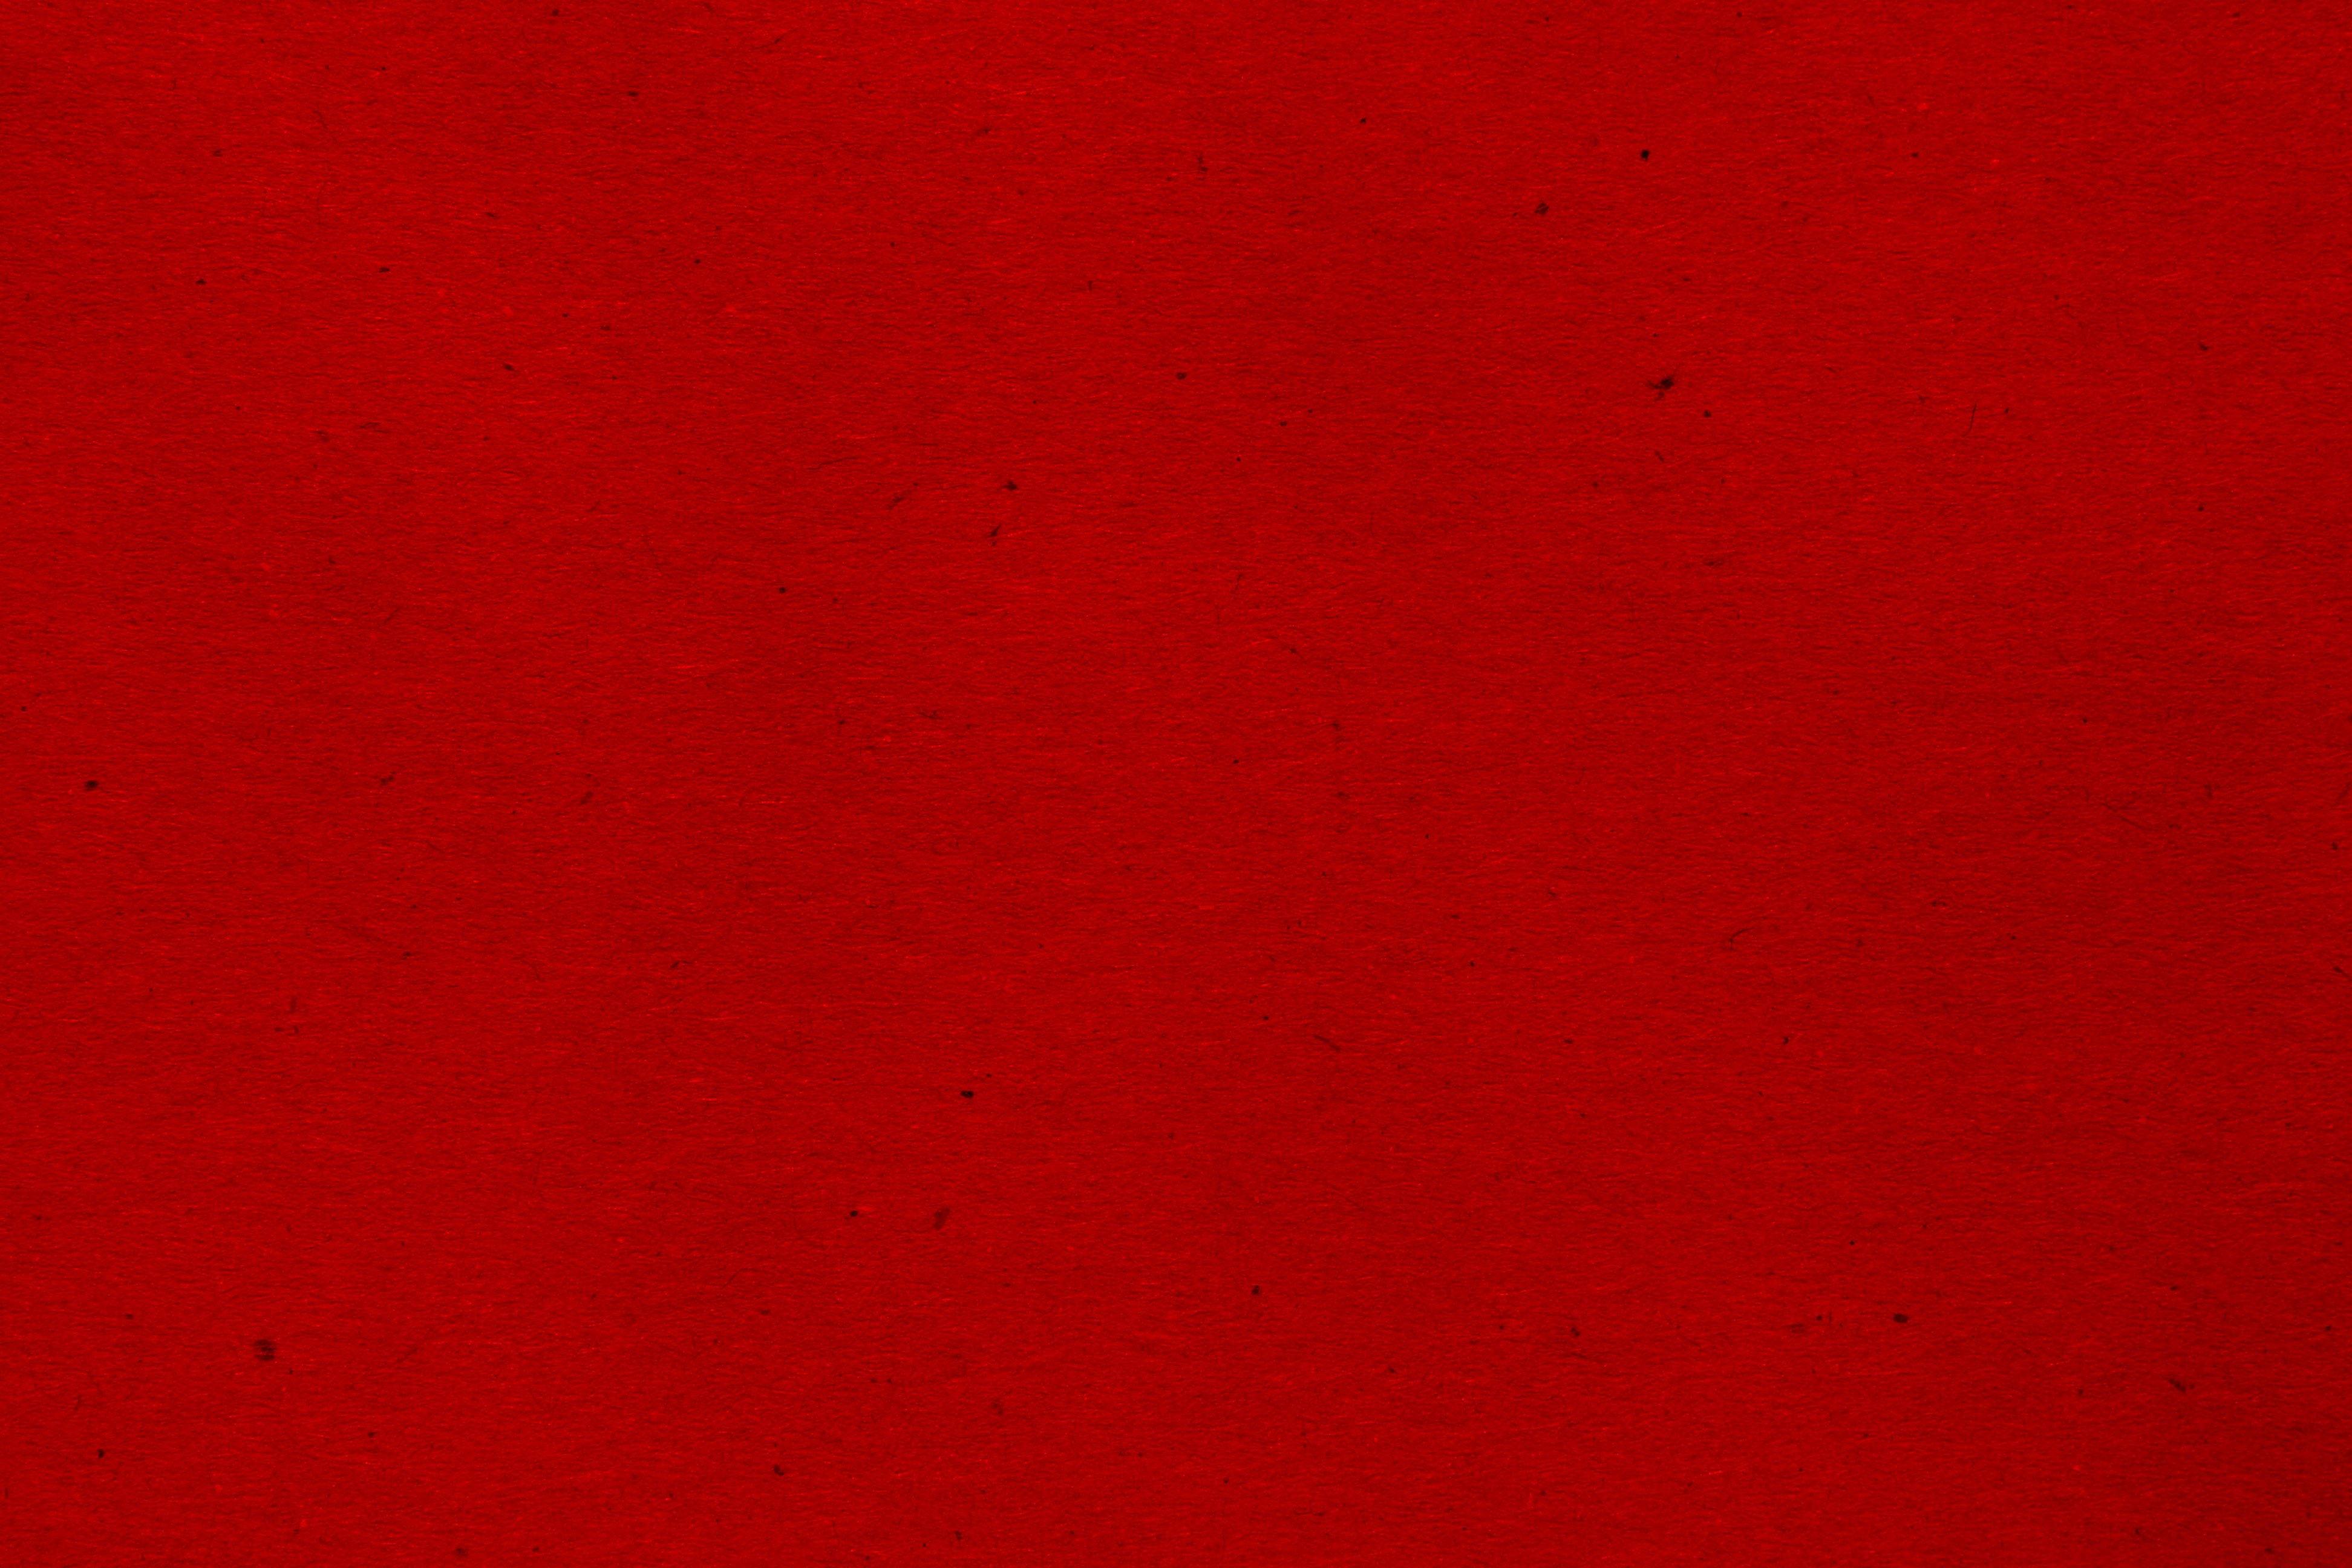 Deep red paper texture with flecks picture photograph photos 3888x2592